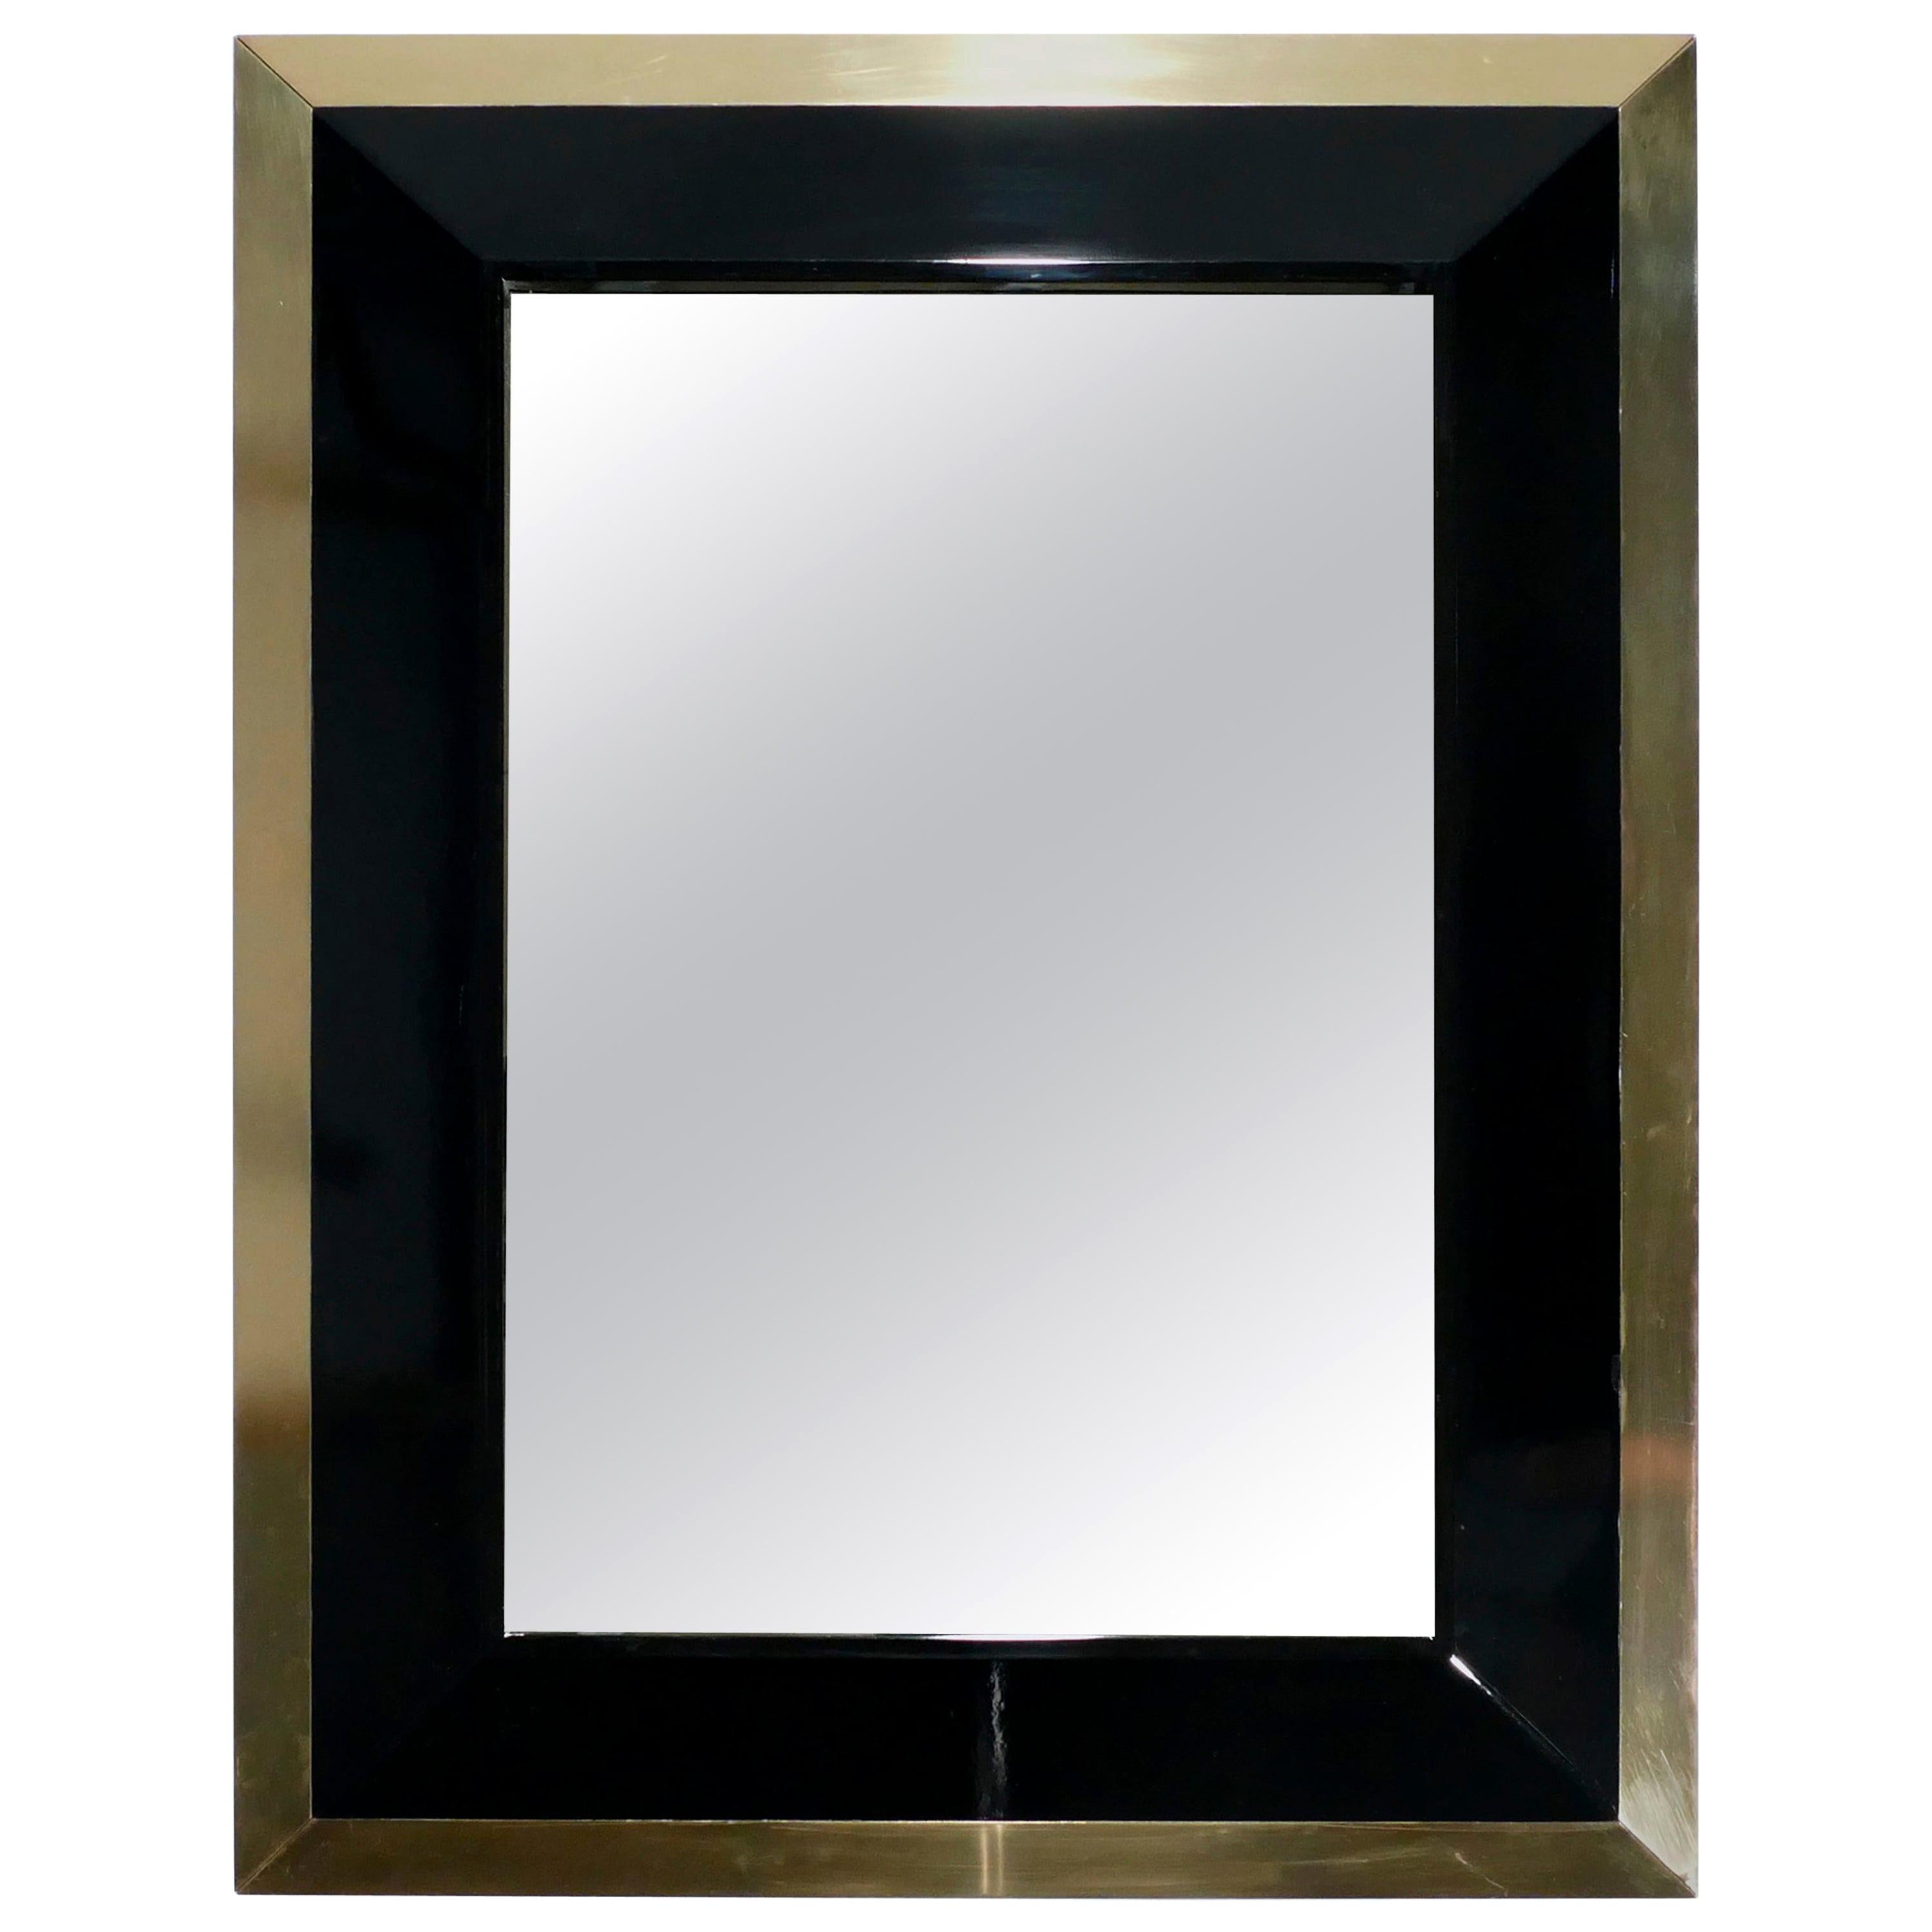 French J.C. Mahey Wall Mirror in Black Lacquer and Brass, 1970s